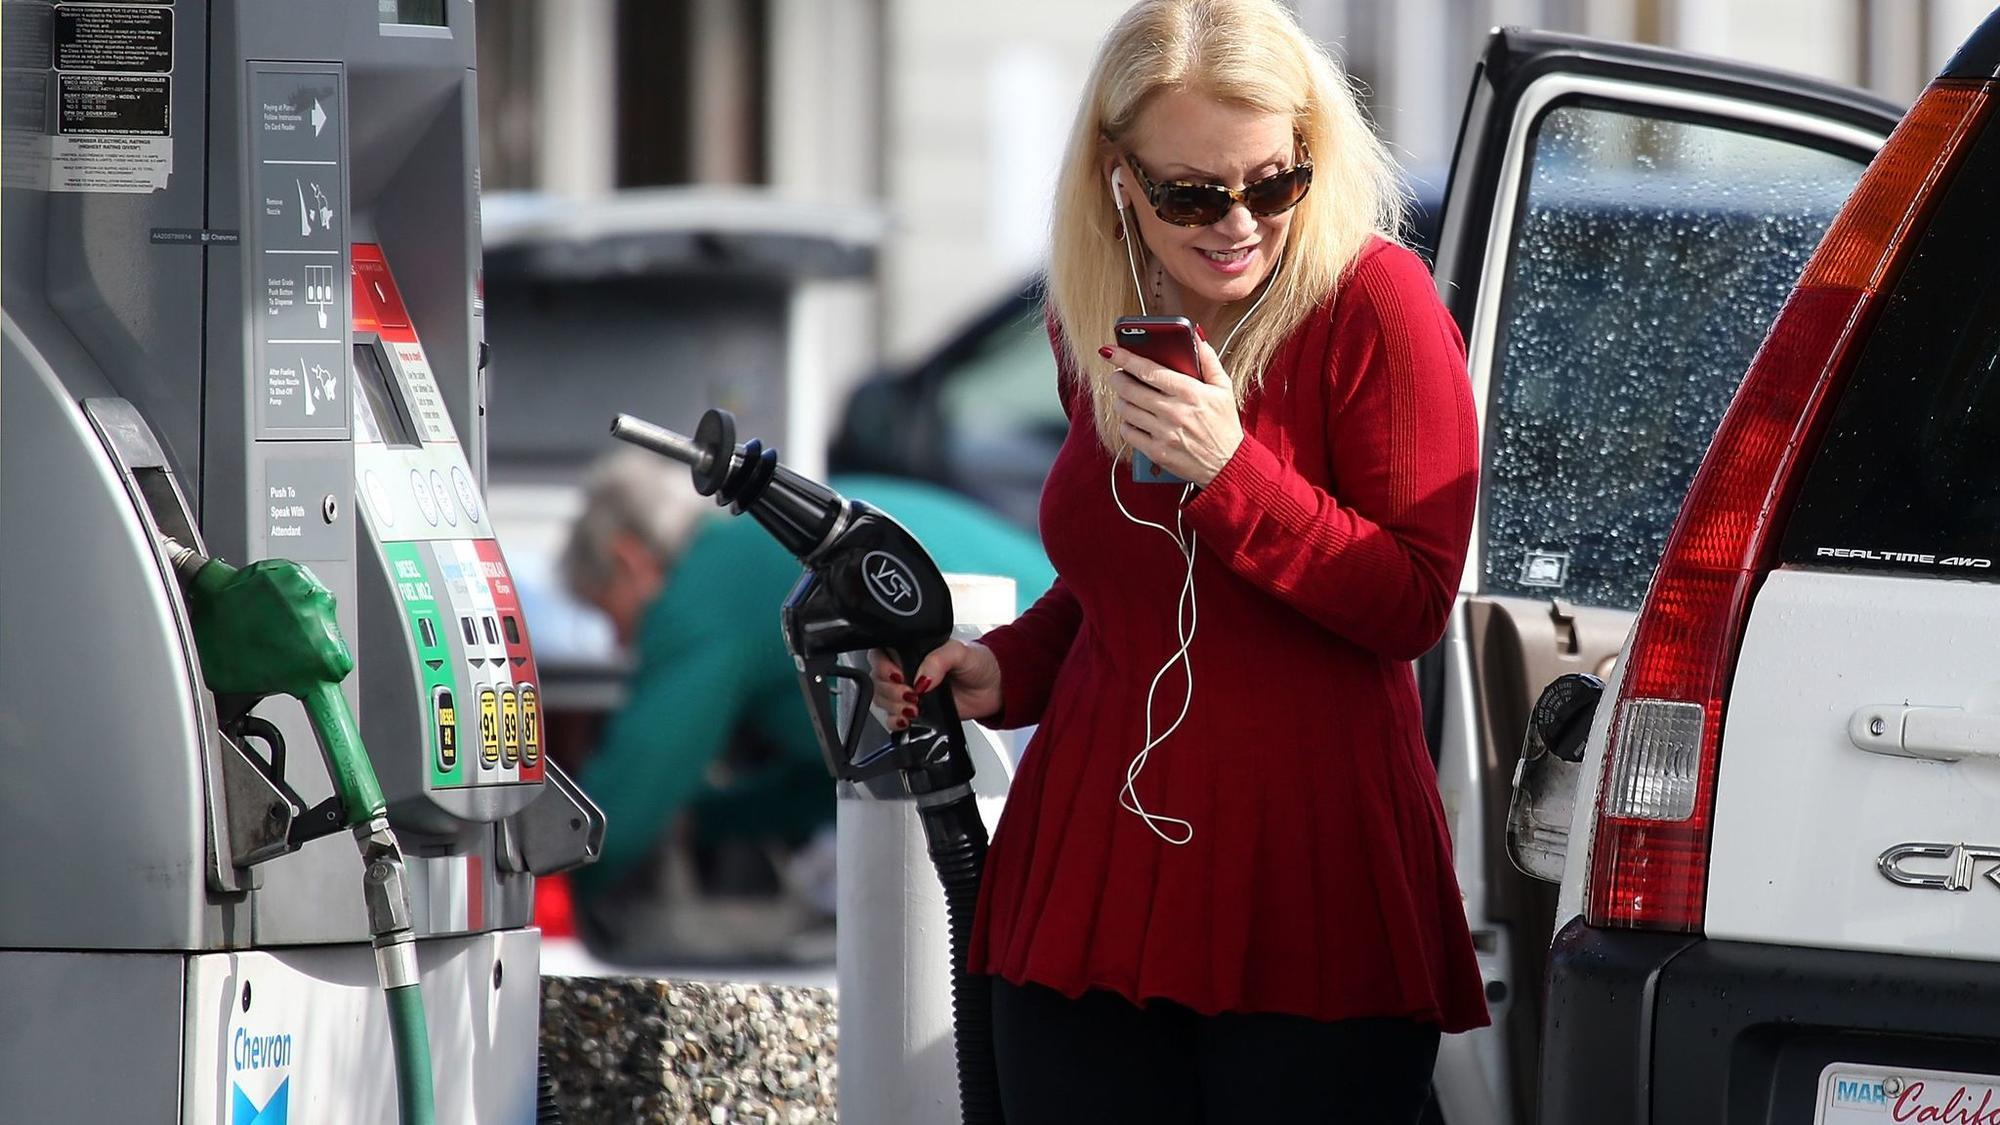 A motorist prepares to gas up her vehicle in San Rafael, Calif., in 2015. (Justin Sullivan / Getty Images)